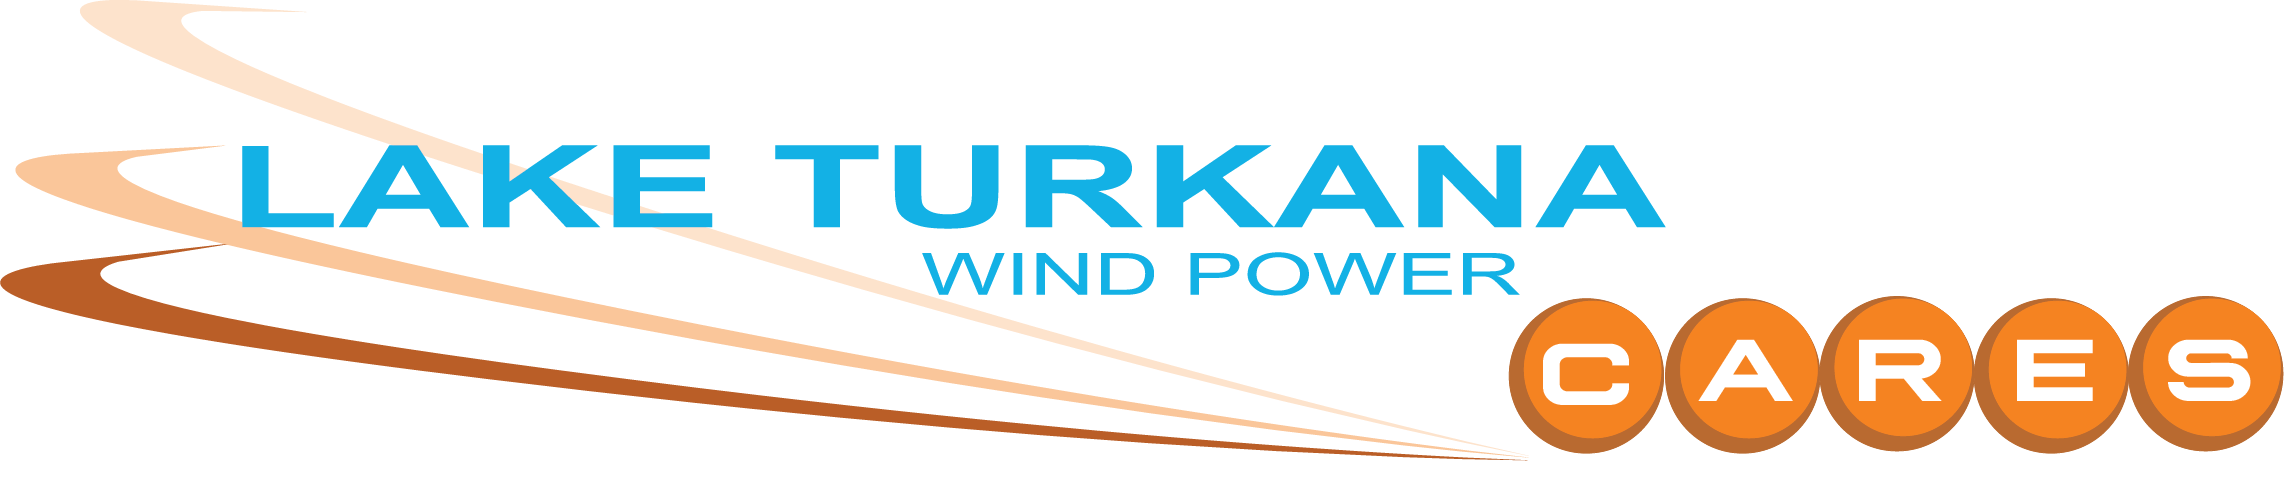 Lake Turkana Wind Power